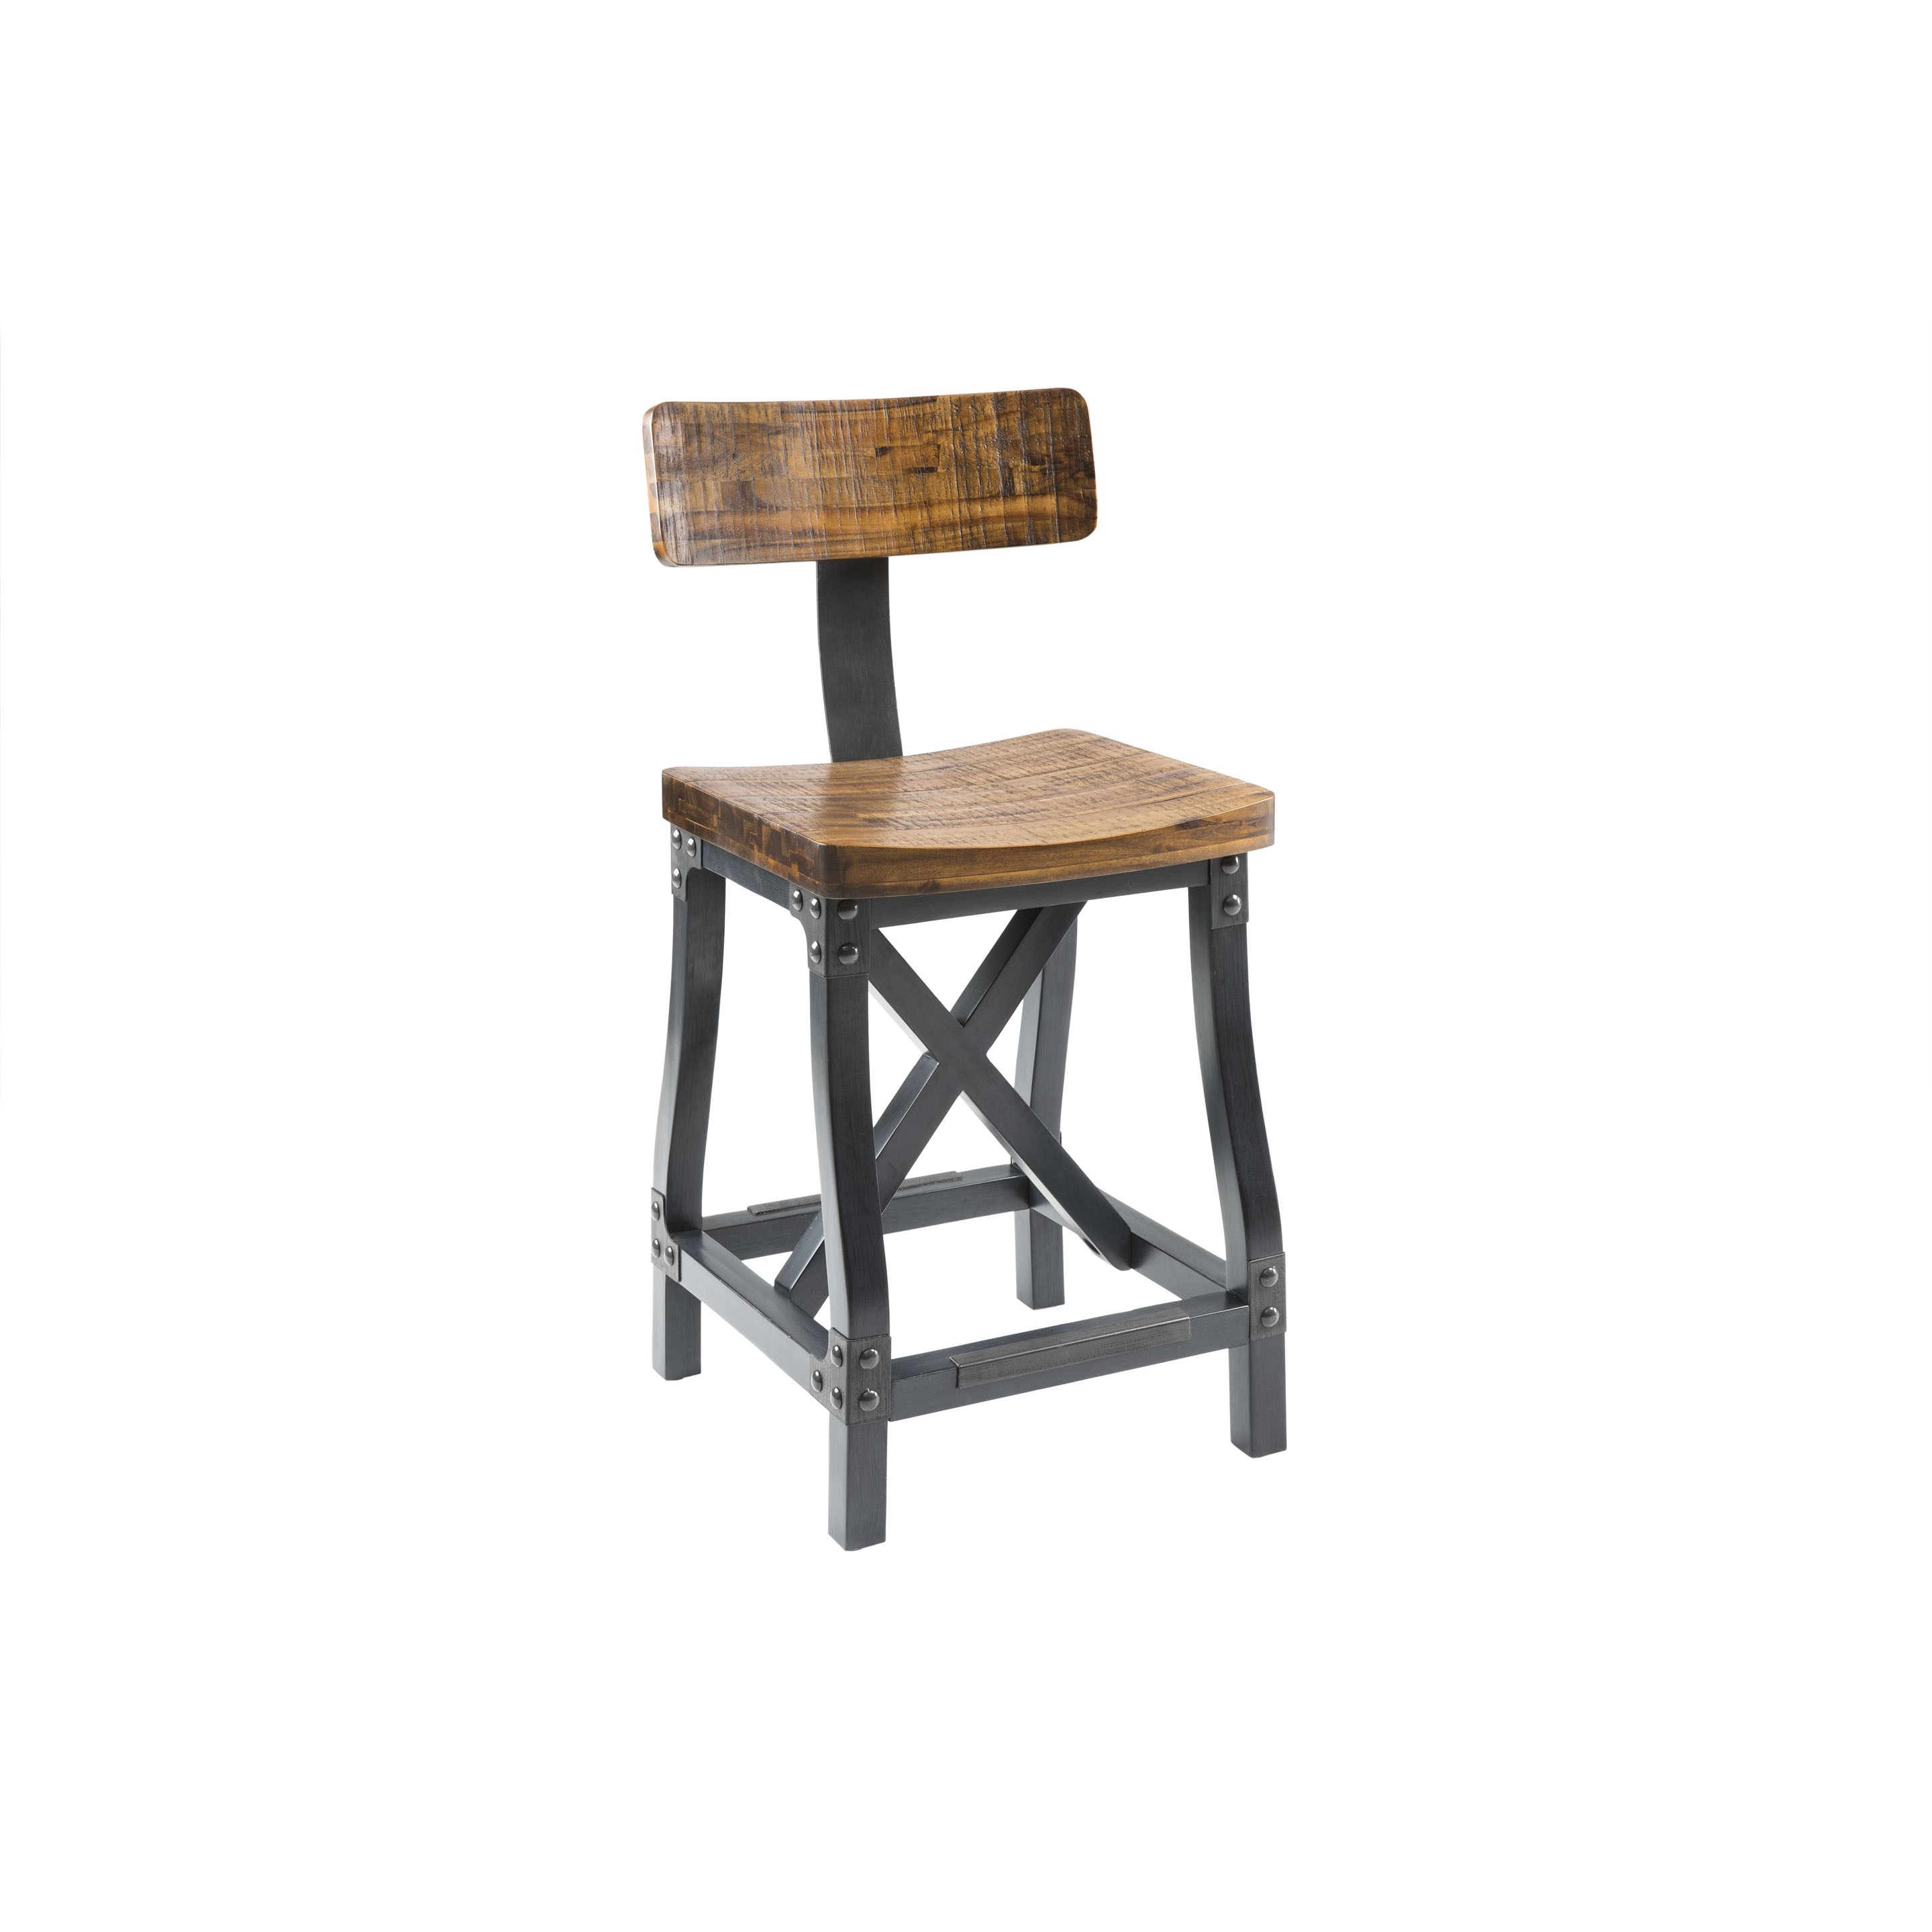 metal counter height stools. Cheyenne Counter Height Bar Stool W/Back | Rustic Stools Furniture Abode \u0026 Company Metal -